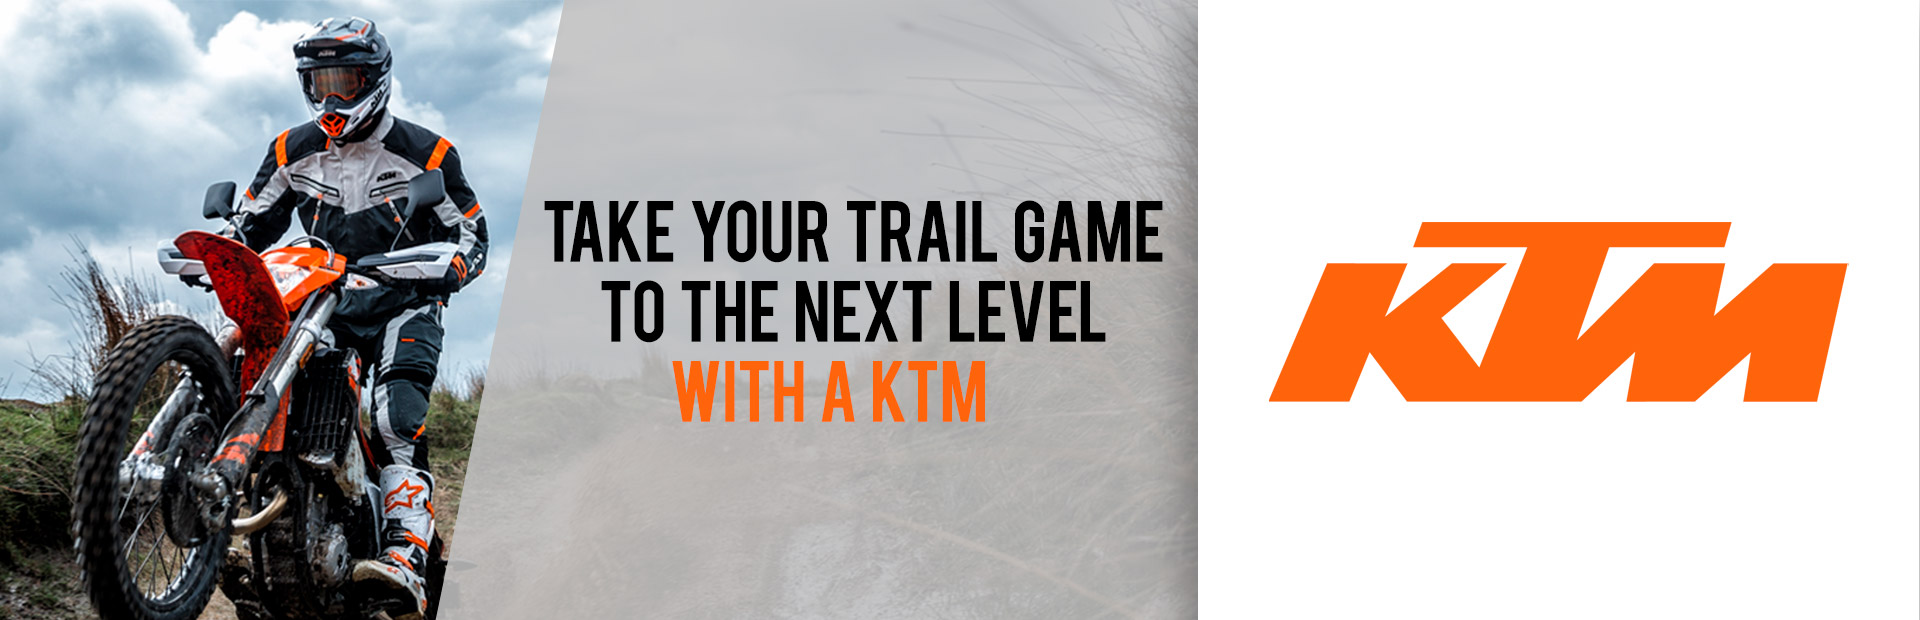 KTM: TAKE YOUR TRAIL GAME TO THE NEXT LEVEL WITH A KTM